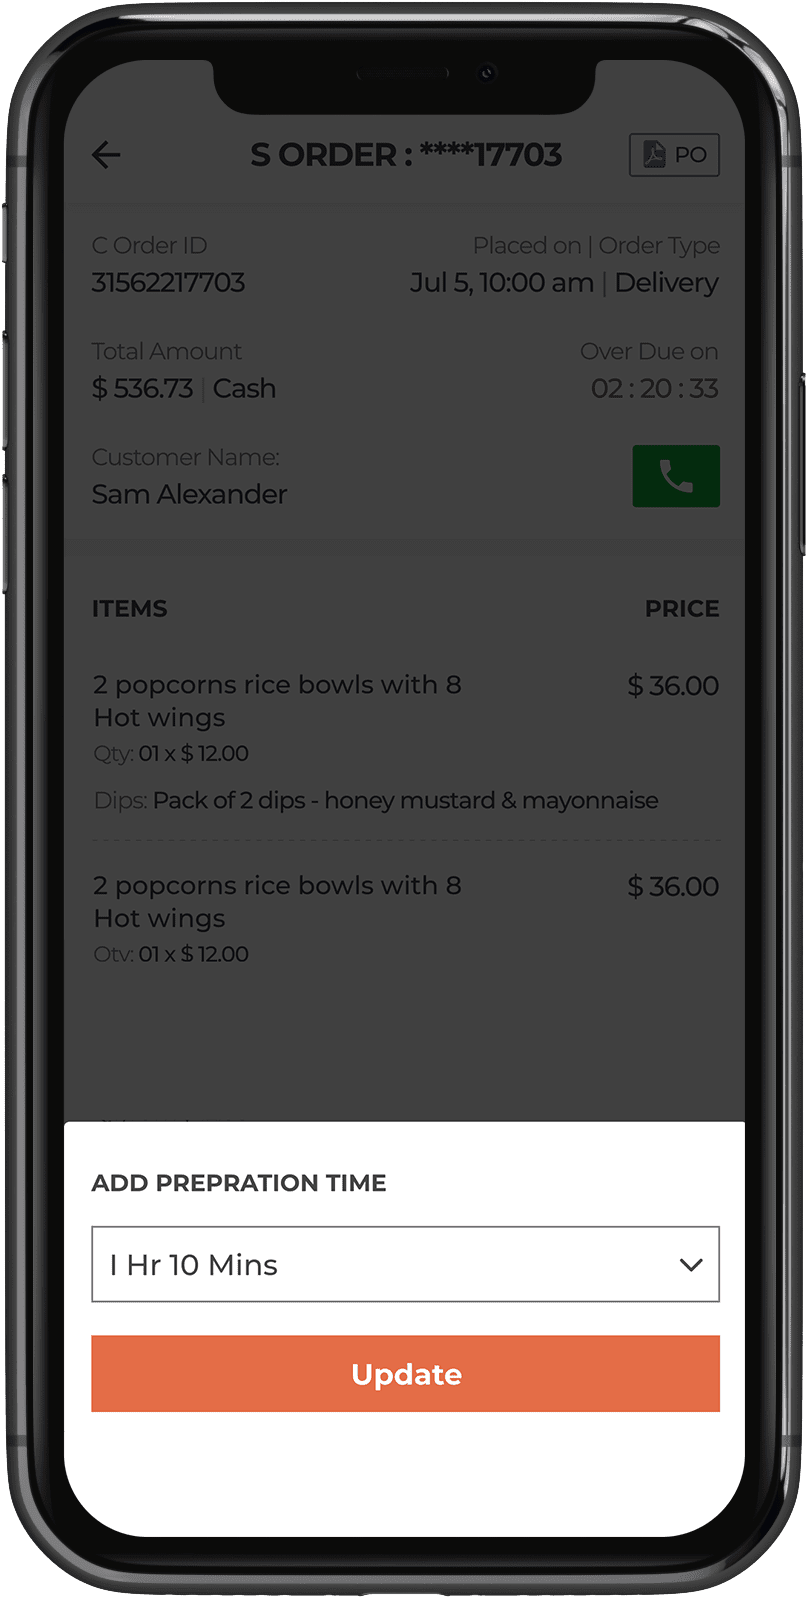 add-preparation-time-in-food-delivery-picker-app.png